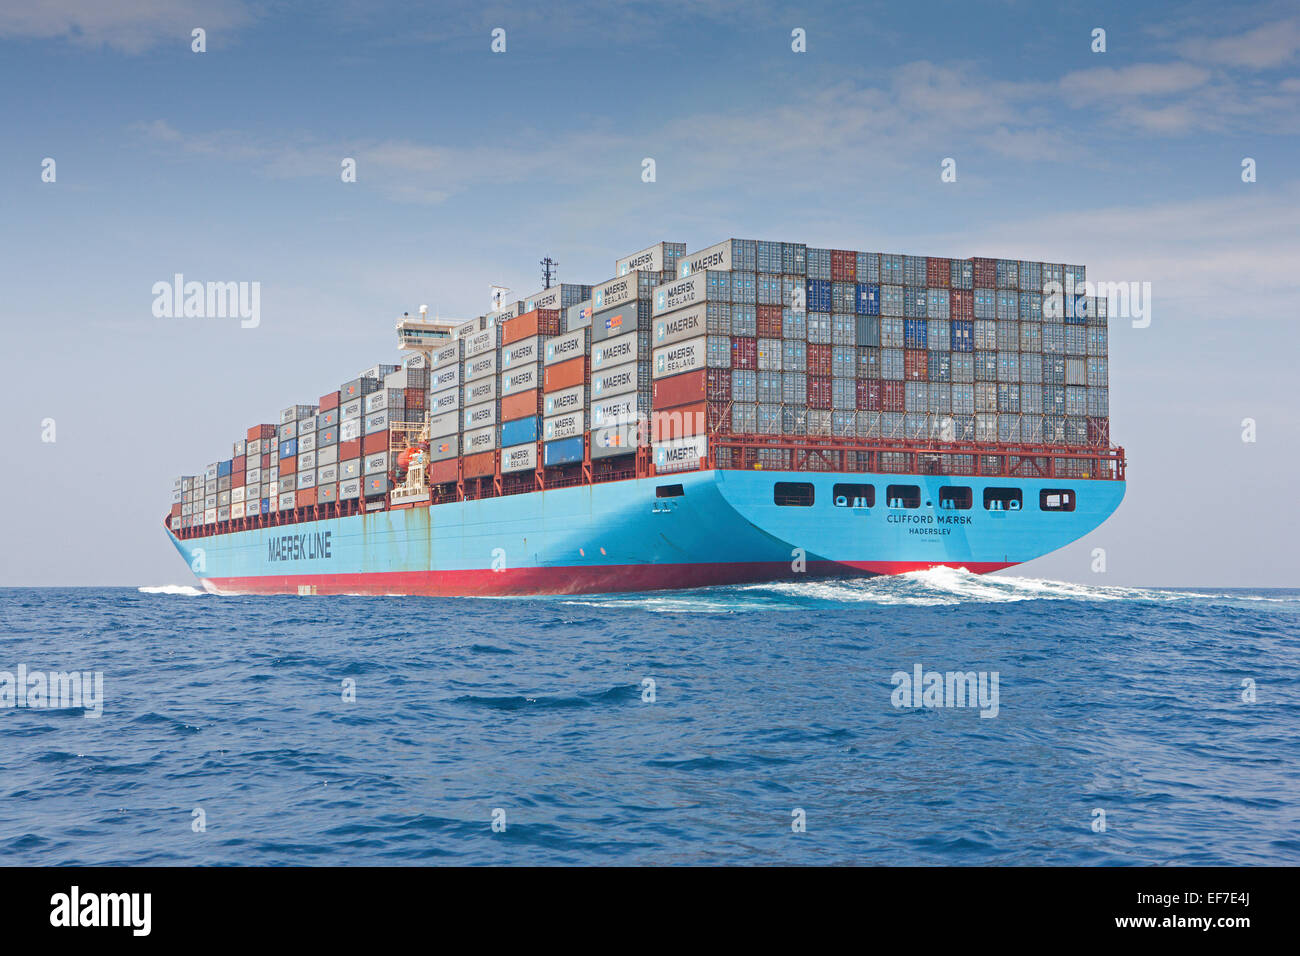 maersk shipping lines